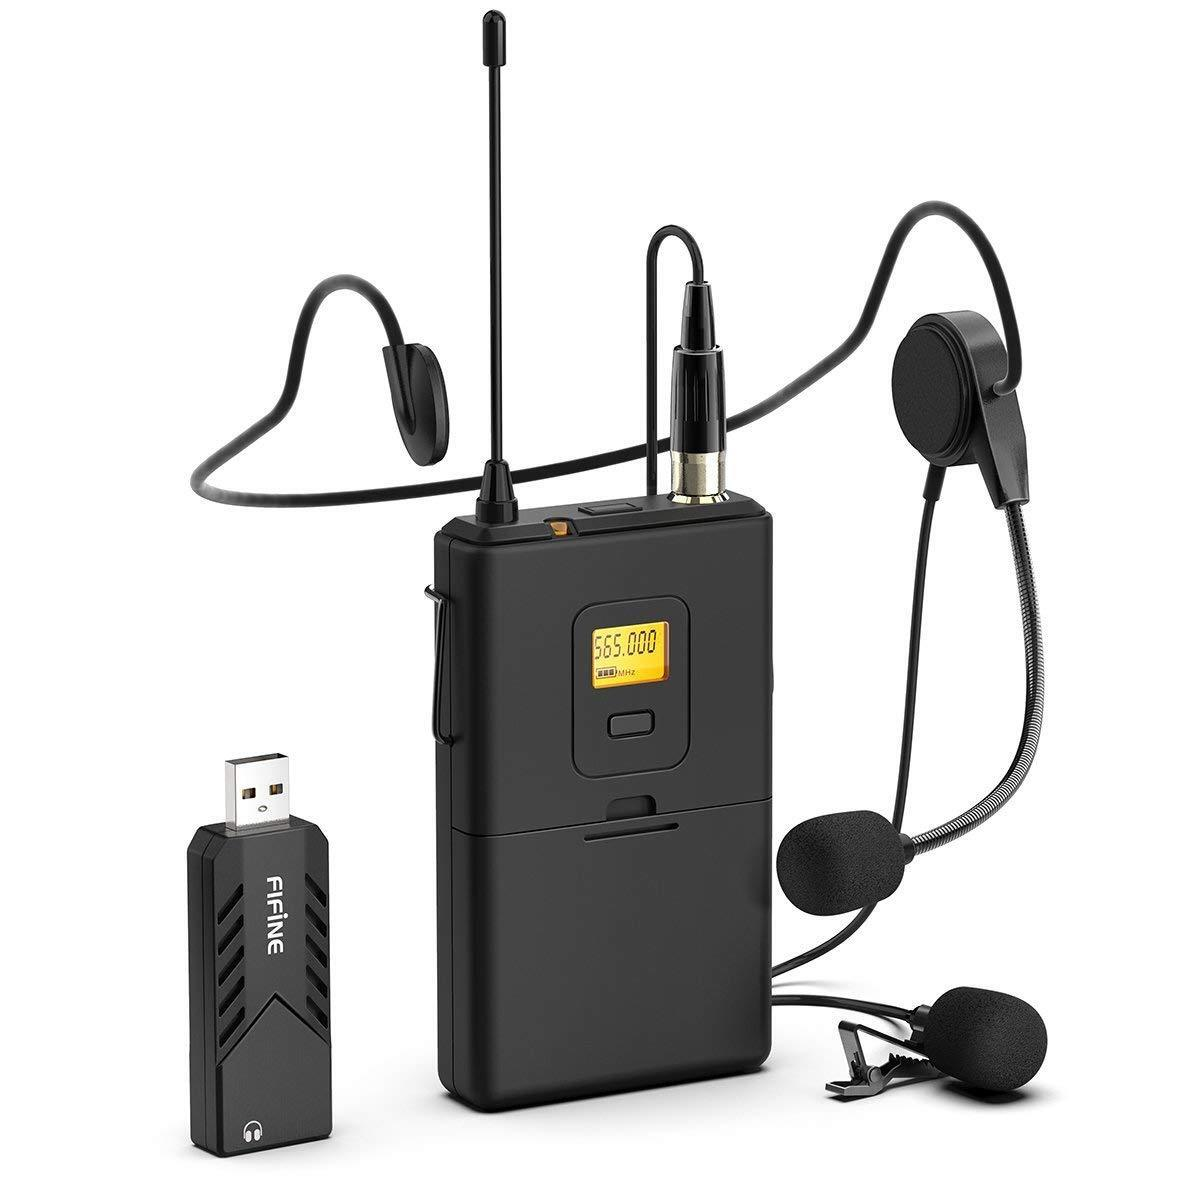 Portable Wireless Lavalier Microphone System For iPhone 7 Plus   iPhone 7